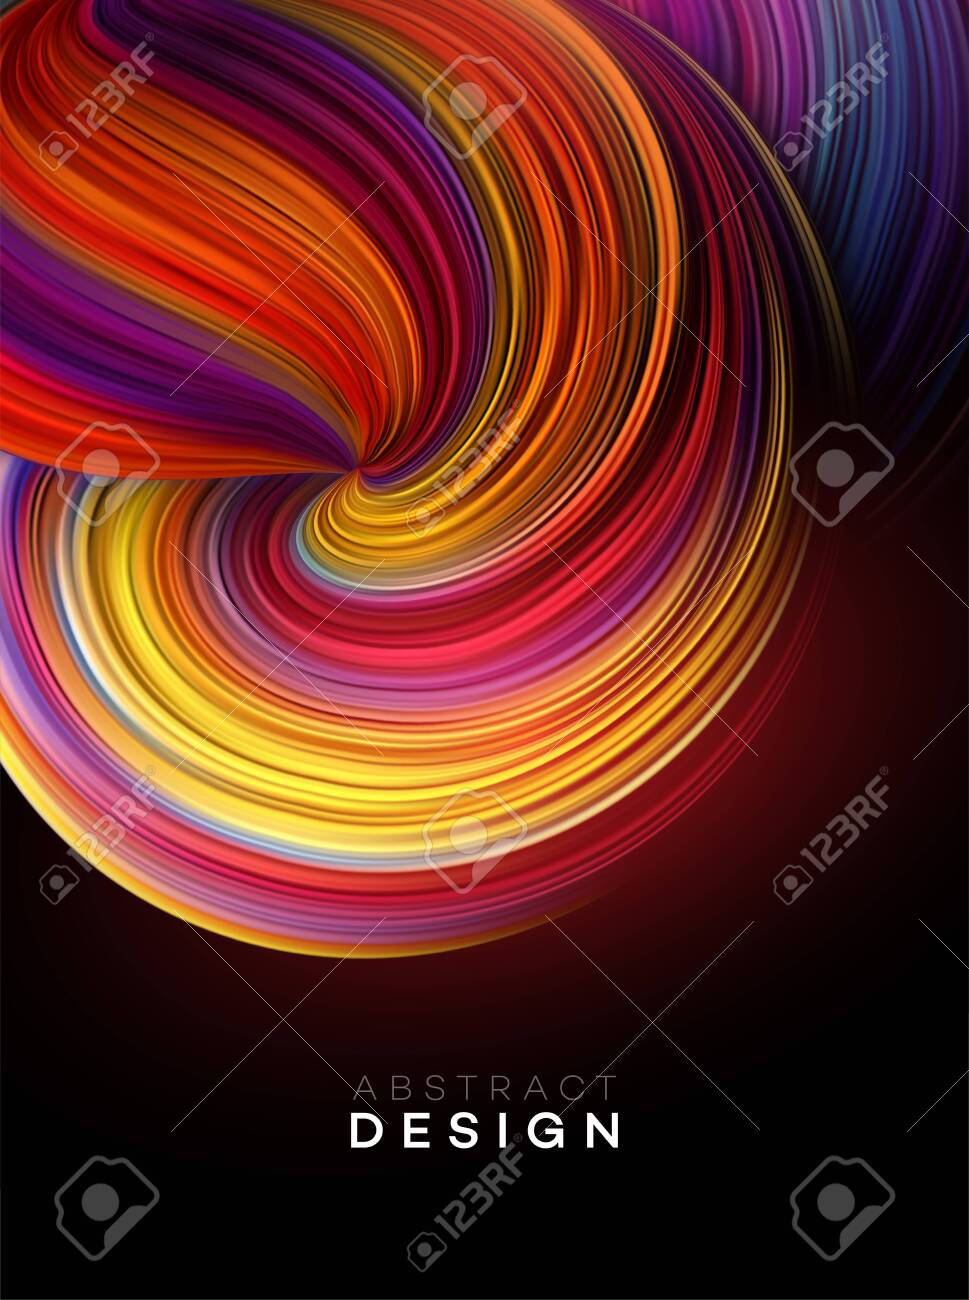 Color Flow Abstract shape poster design. Vector illustration EPS10 - 124060770